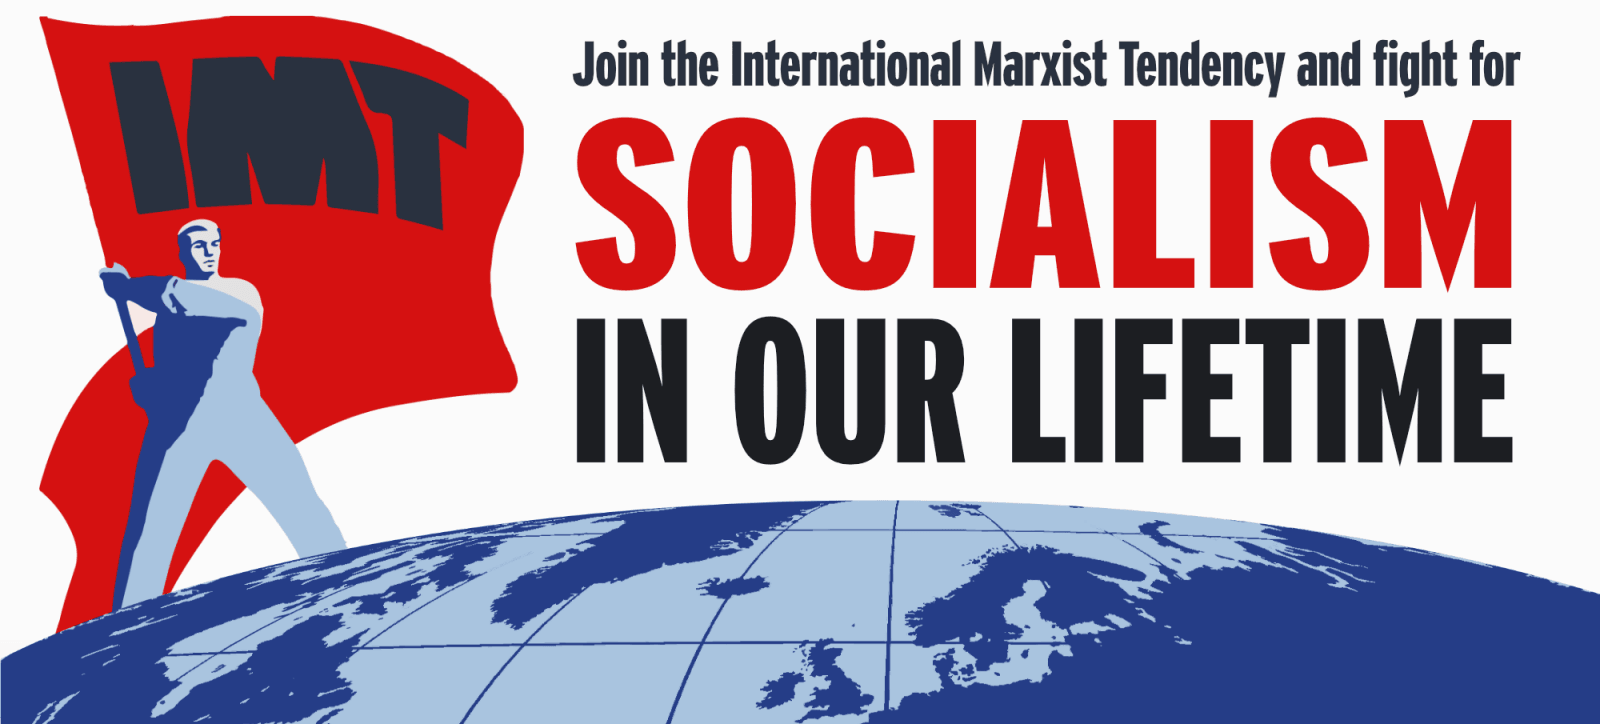 IMT Socialism in our Lifetime